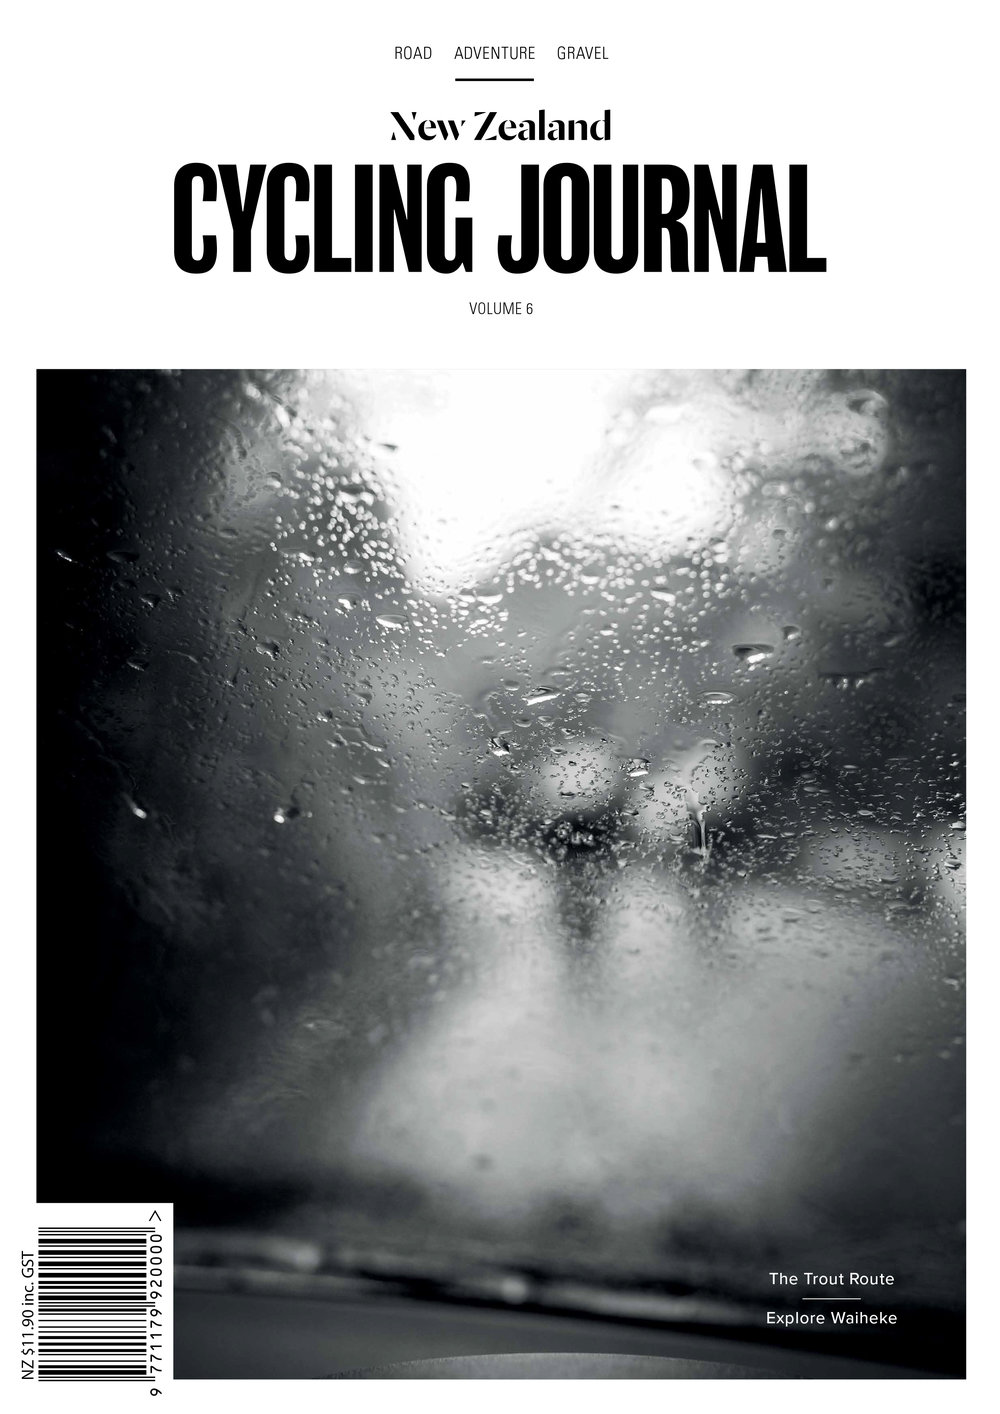 NZ Cycling Journal - Vol.6 Cover.jpg